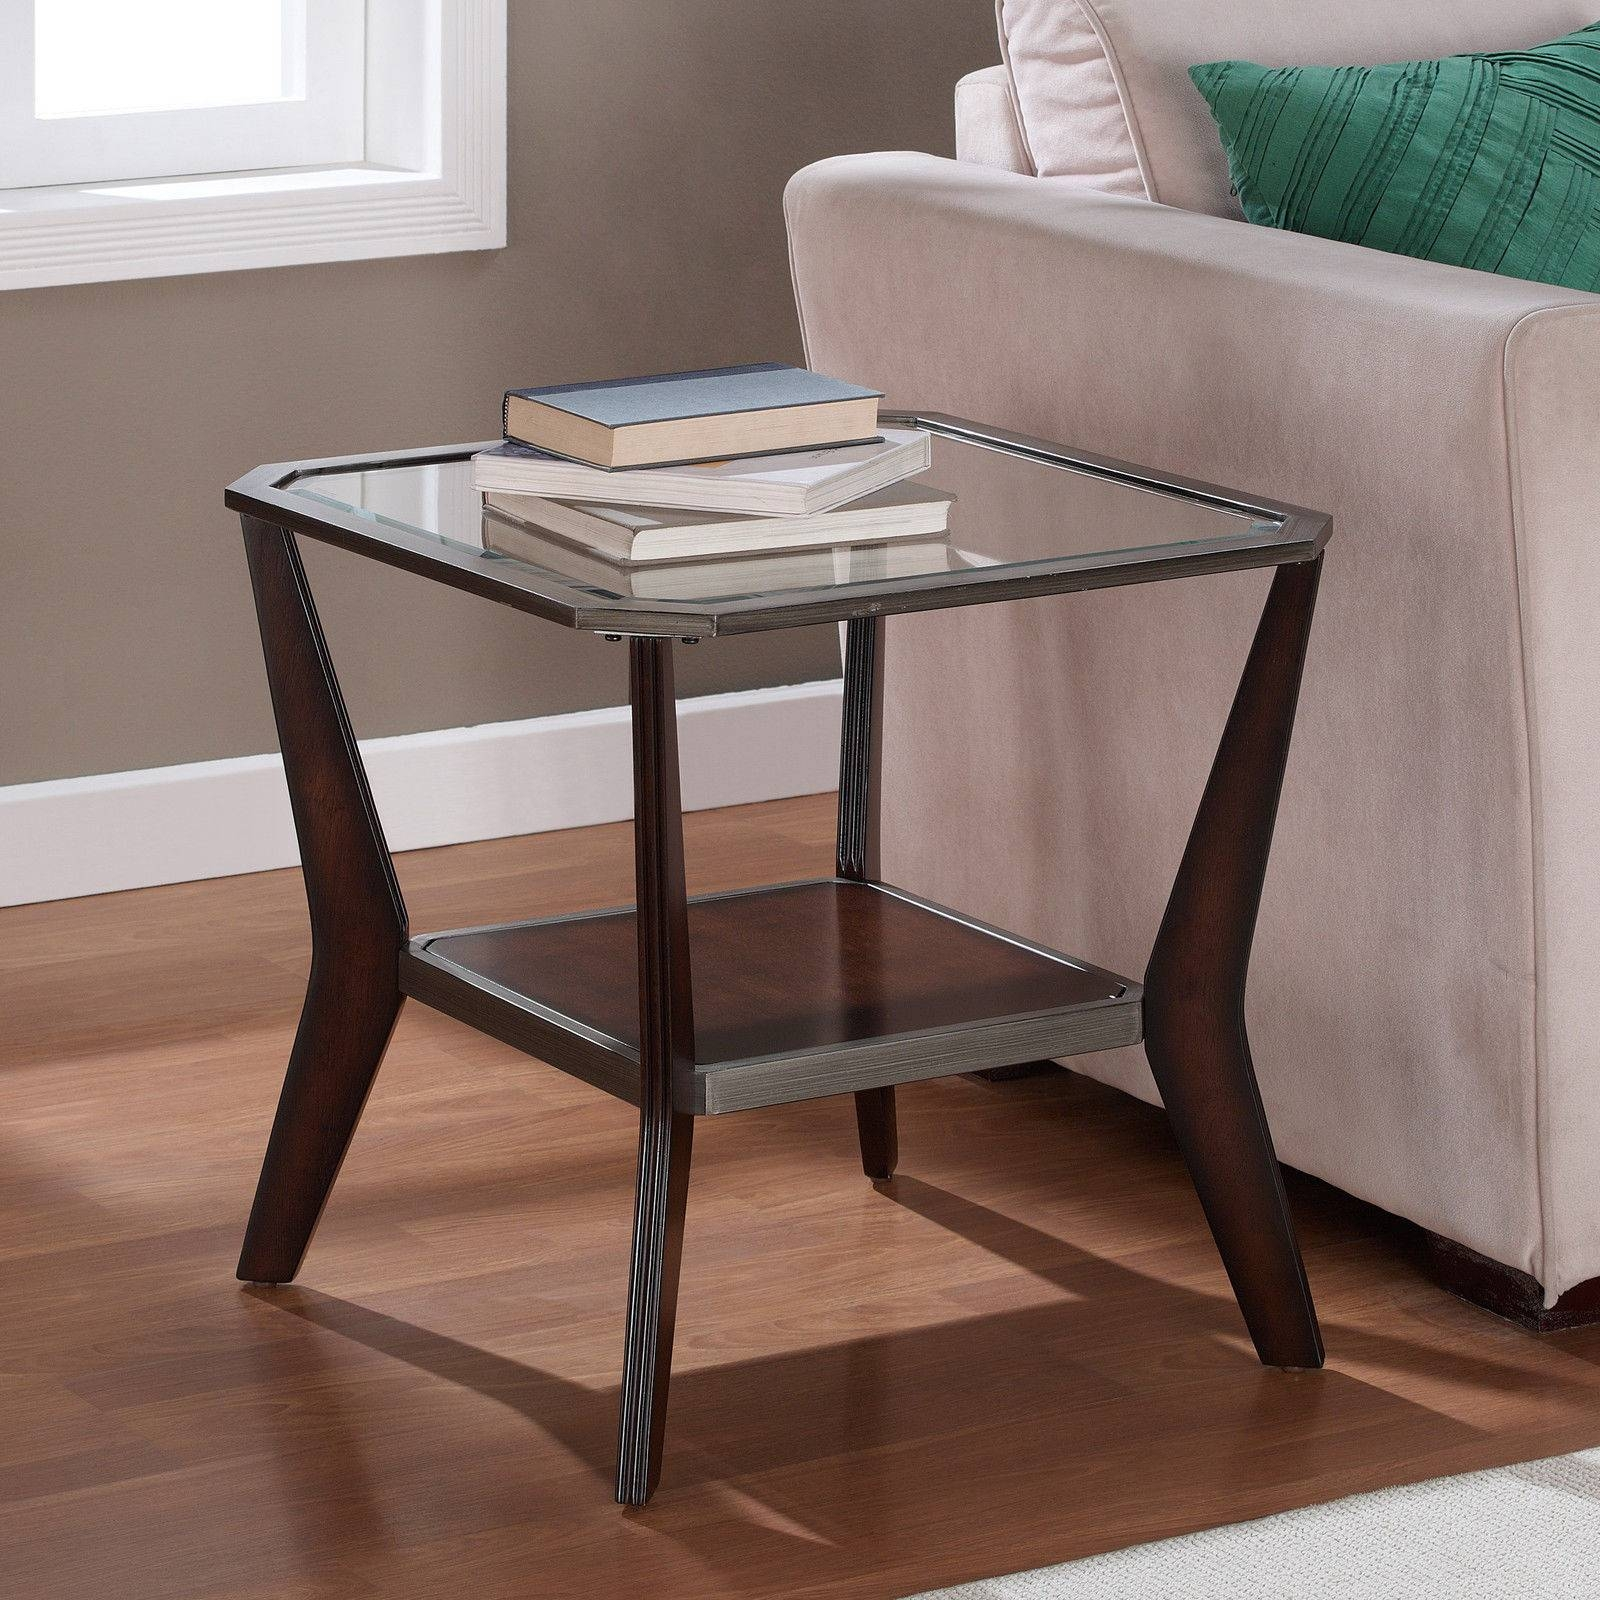 Awesome Furniture For Interior Living Room Inspiring Design intended for Retro Glass Coffee Tables (Image 7 of 30)